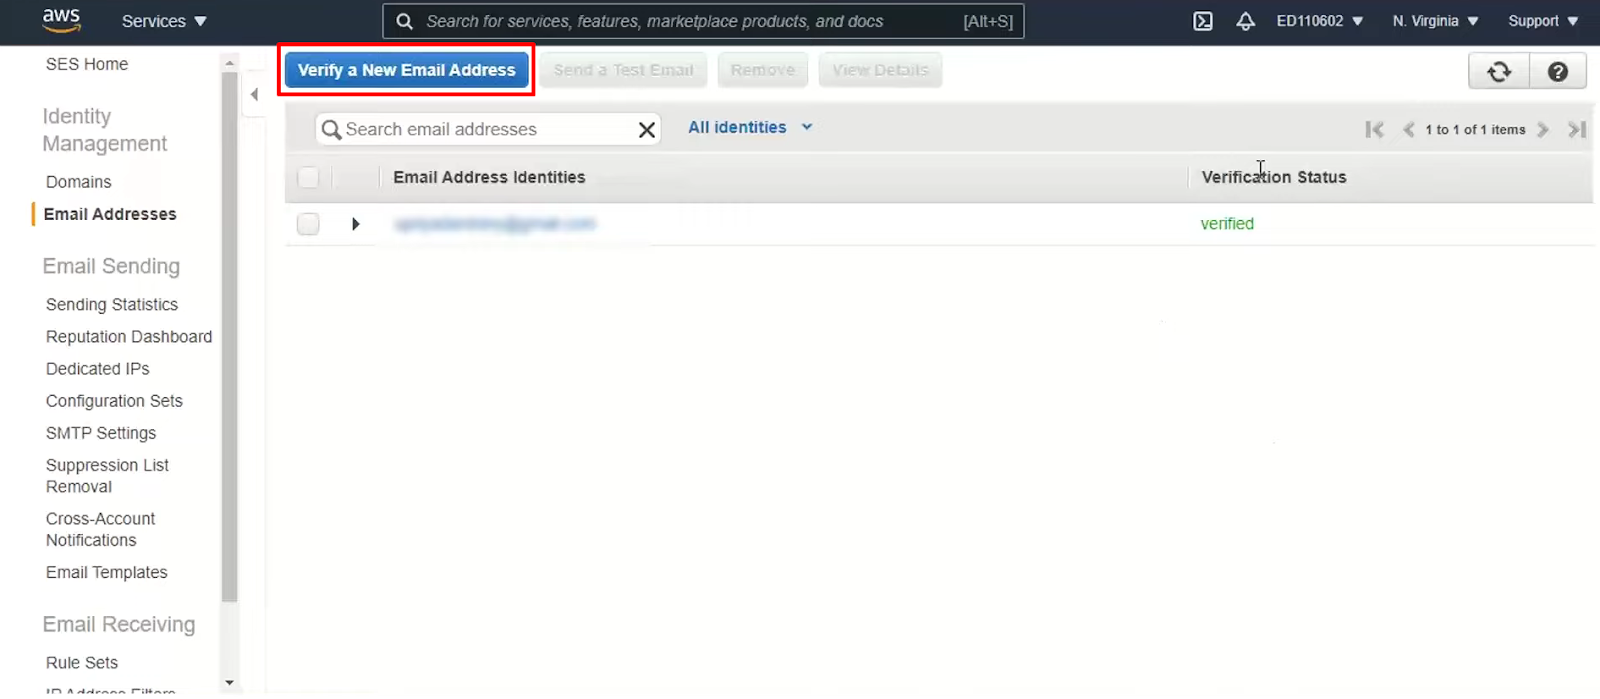 verifying an email address in amazon ses